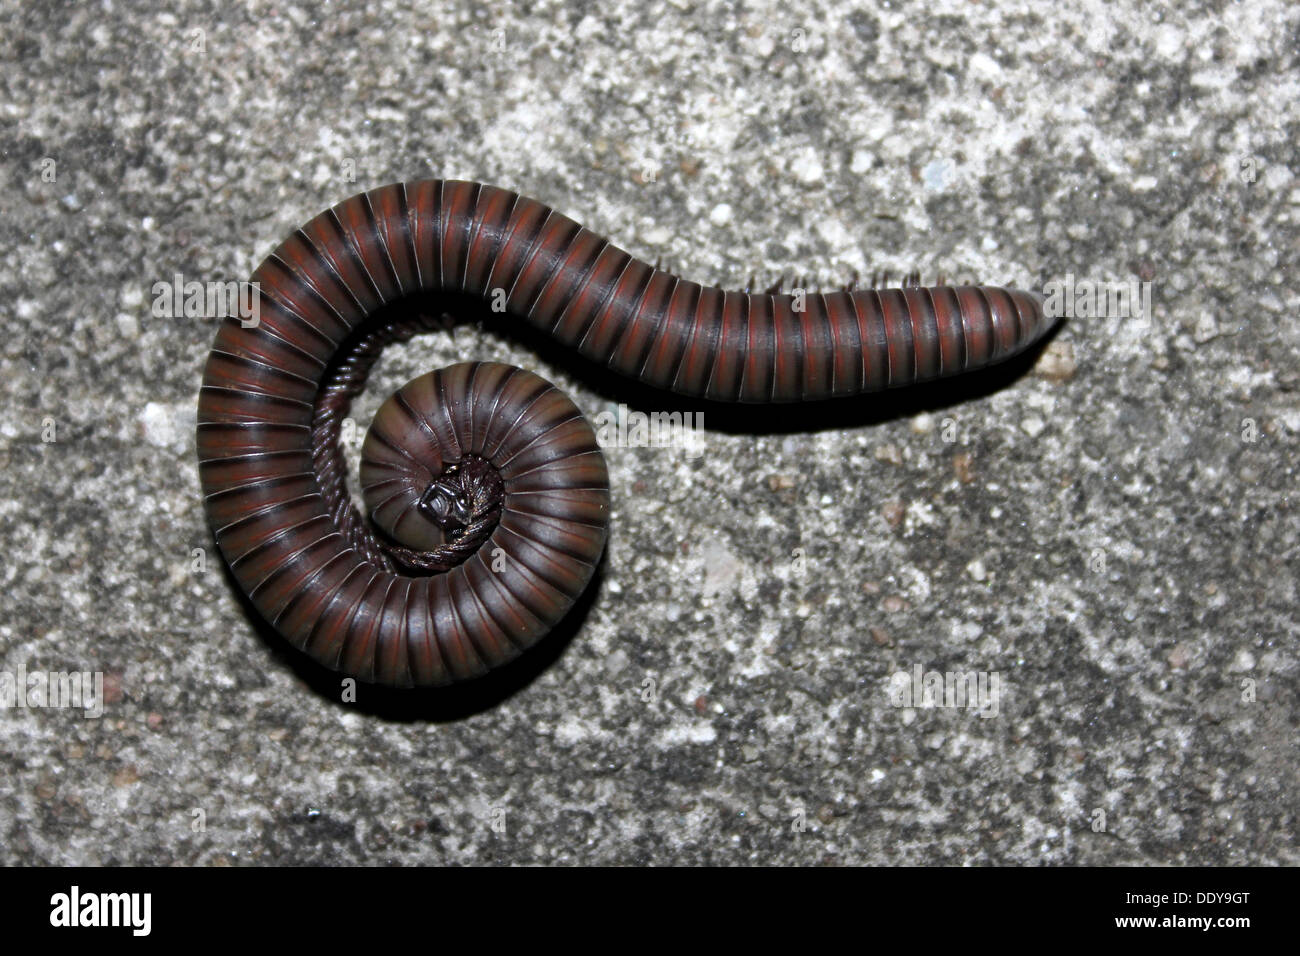 Curled-up Millipede, Ghana - Stock Image